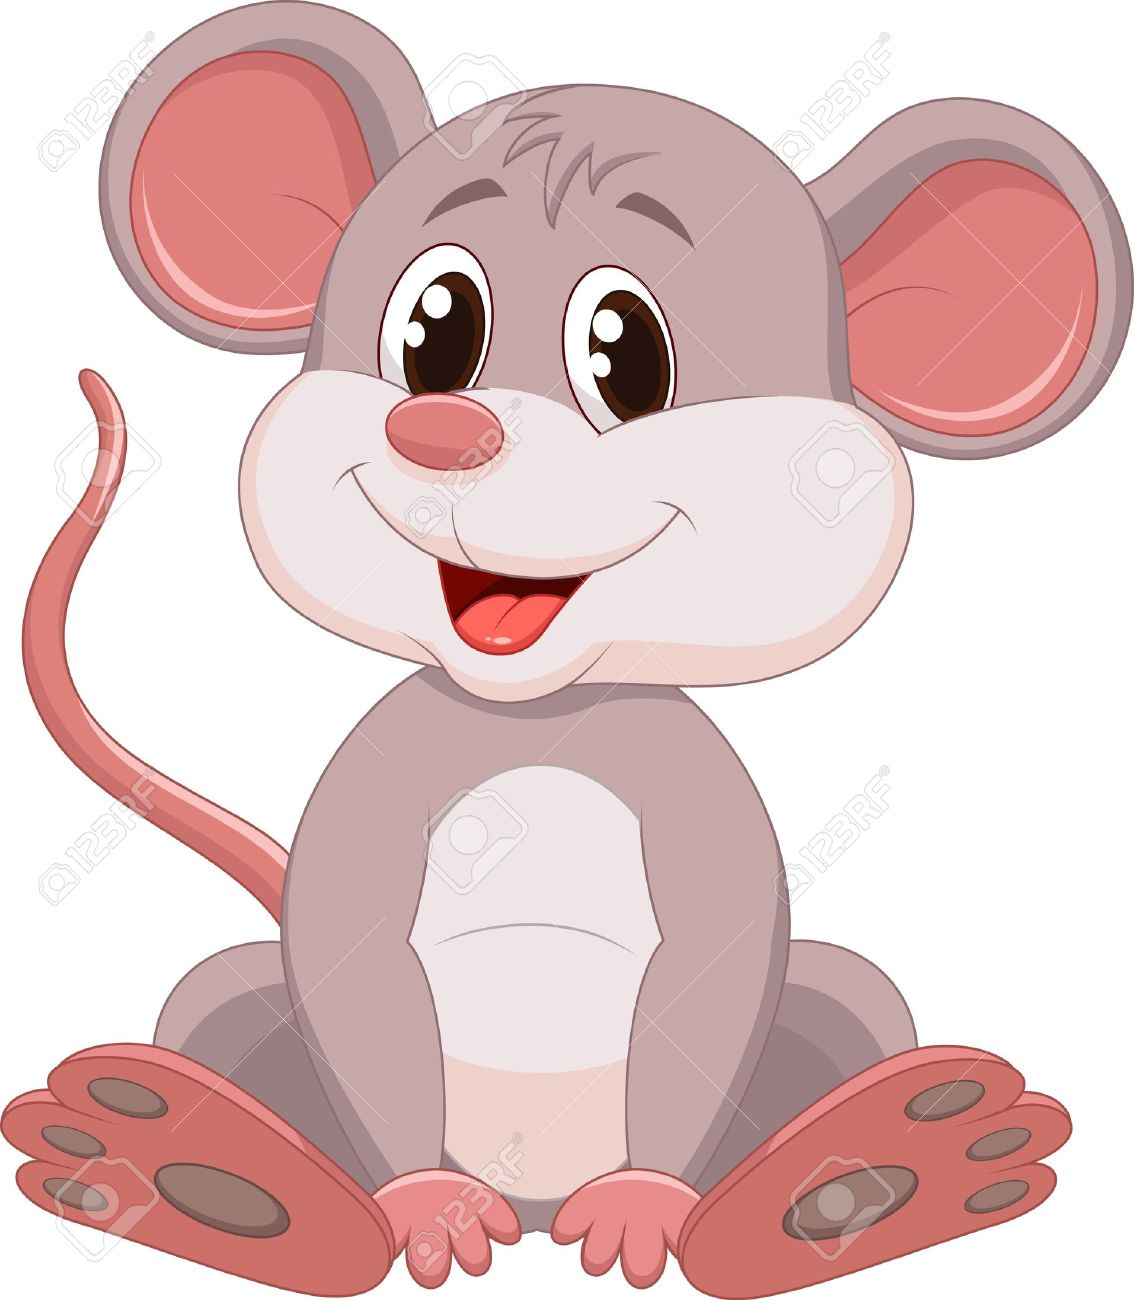 28,866 Rodent Stock Illustrations, Cliparts And Royalty Free ...